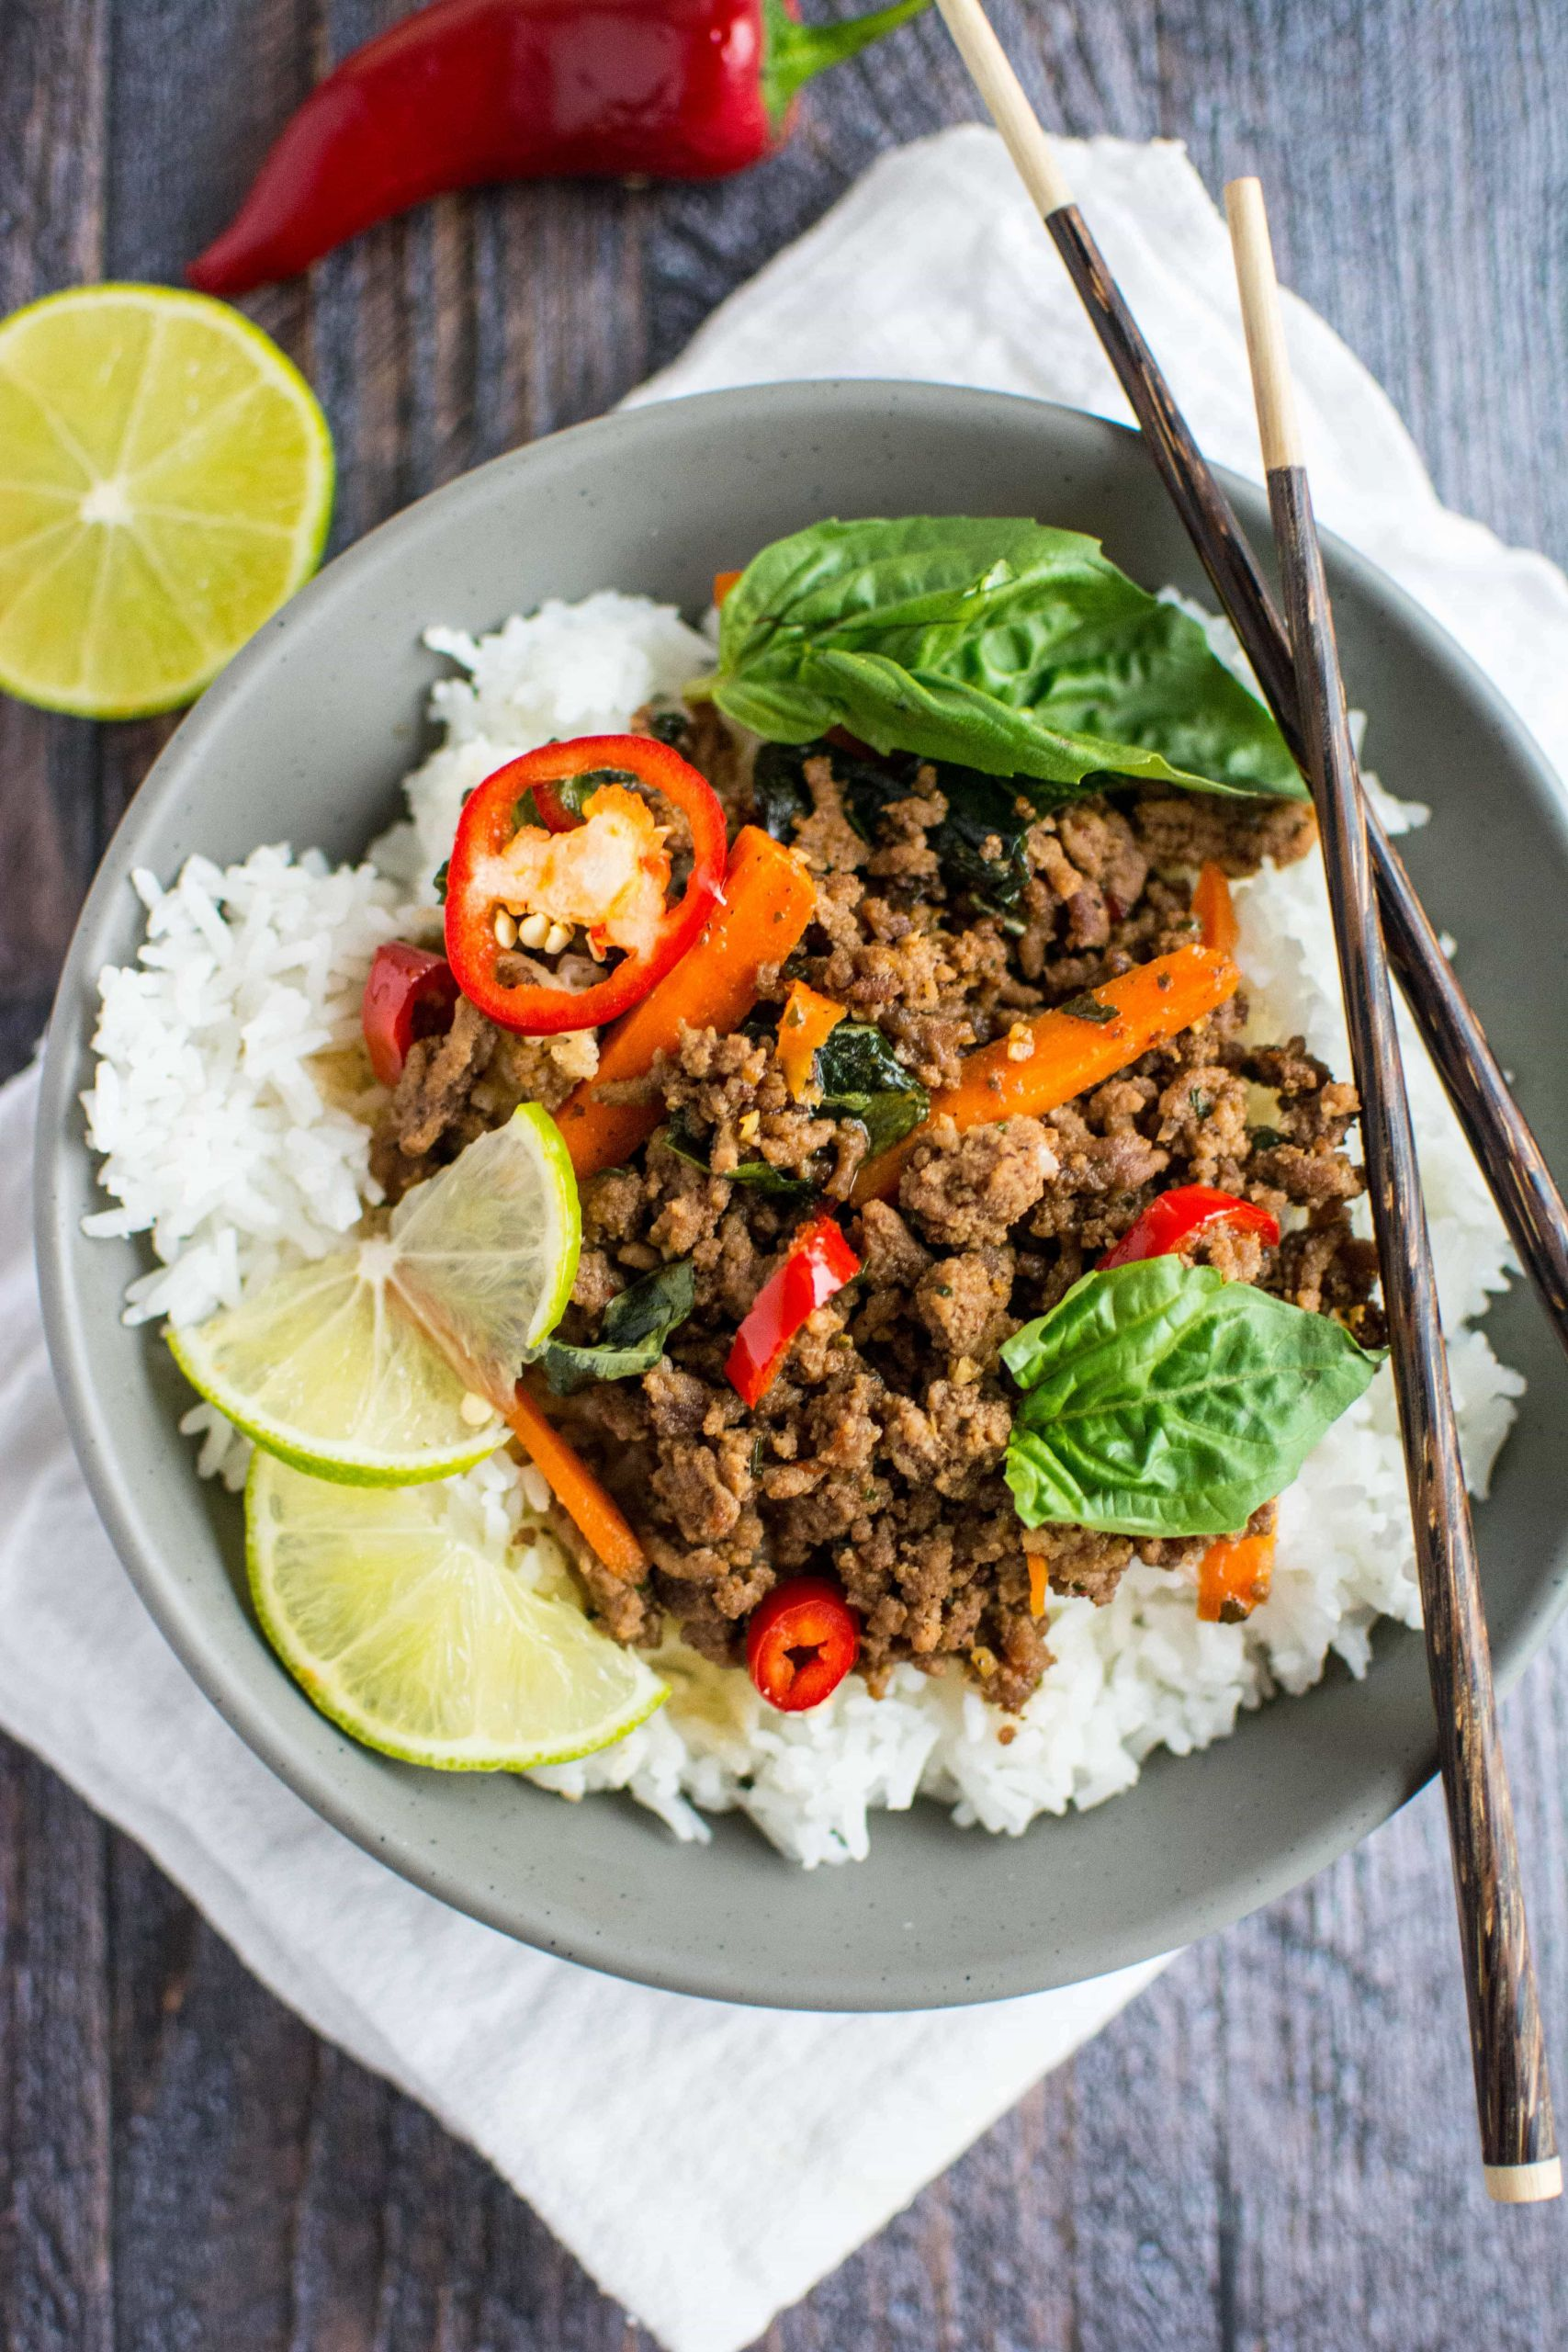 Gourmet Ground Beef Recipes  Quick Fix Meal Thai Basil Beef Slow Cooker Gourmet